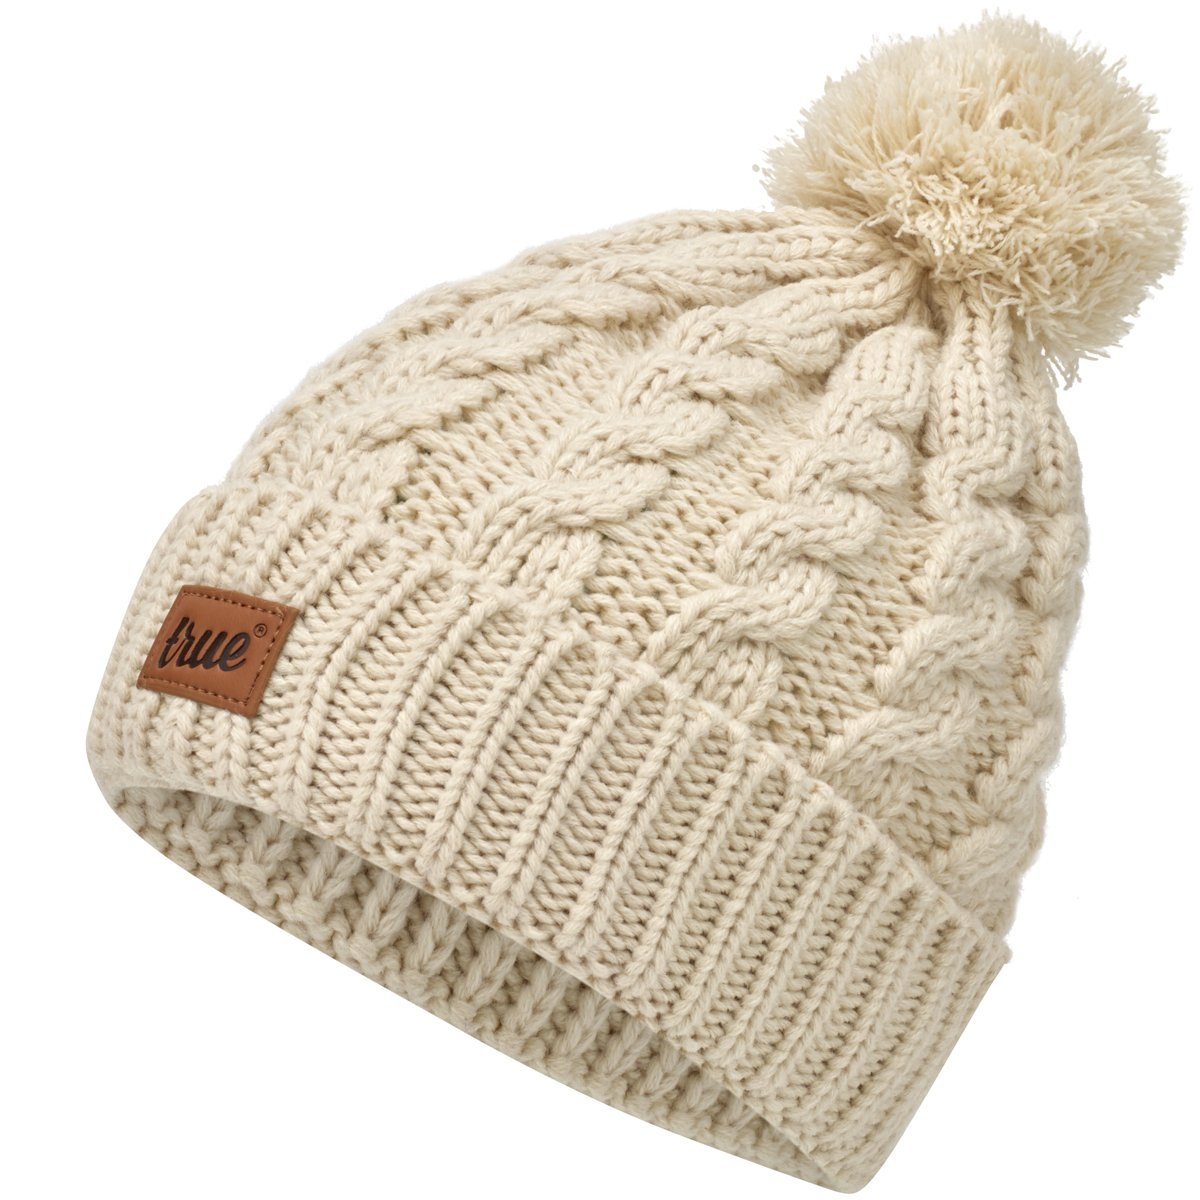 TRUE VISION Womens Beanie Hat - Cable Knitted Bobble Hat with 2 Detachable Poms. TRUECHUNKBLACK